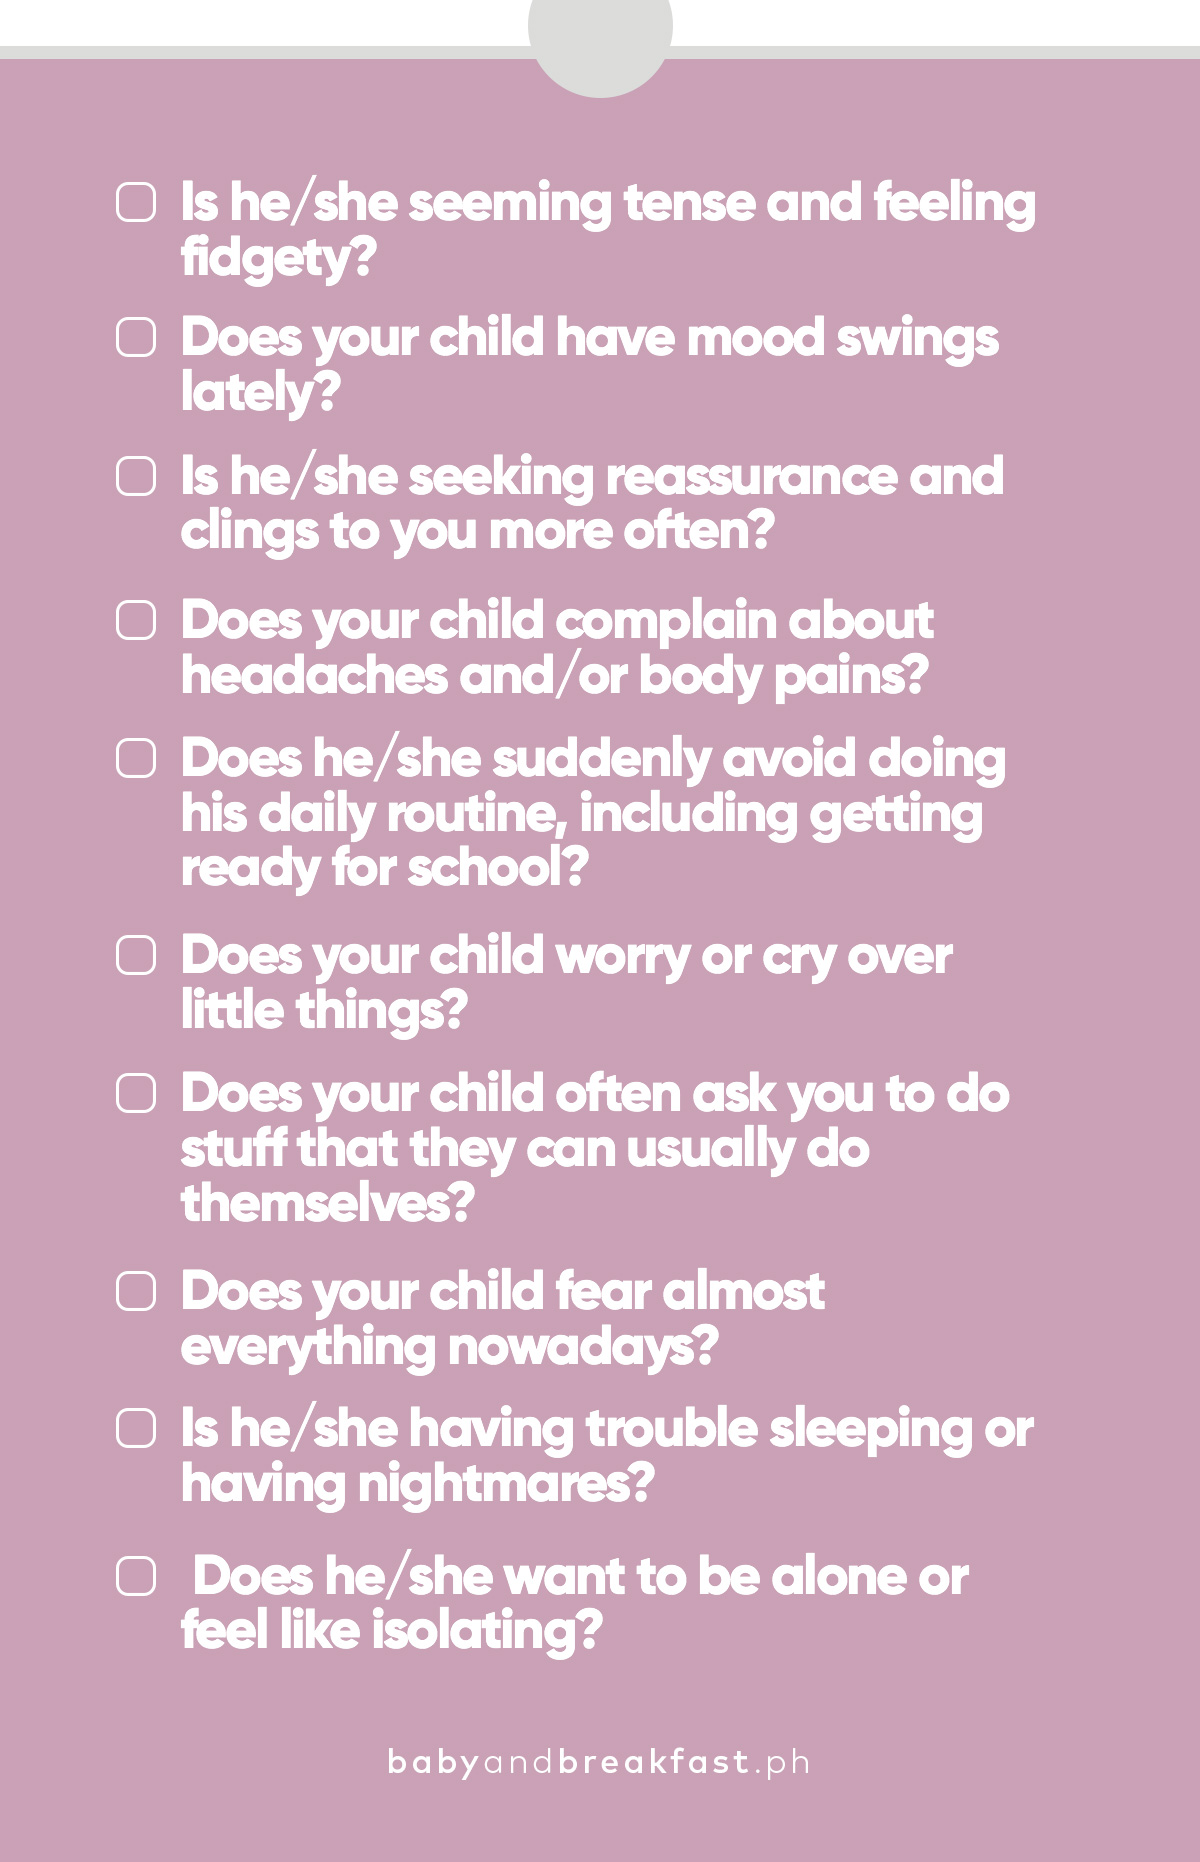 Is he/she seeming tense and feeling fidgety? Does your child have mood swings lately? Is he/she seeking reassurance and clings to you more often? Does your child complain about headaches and/or body pains? Does he/she suddenly avoiding doing his daily routine, including getting ready for school? Does your child worry or cry over little things? Does your child often ask you to do stuff that they can usually do themselves? Does your child fear almost everything nowadays? Is he/she having trouble sleeping or having nightmares? Does he/she want to be alone or feel like isolating?